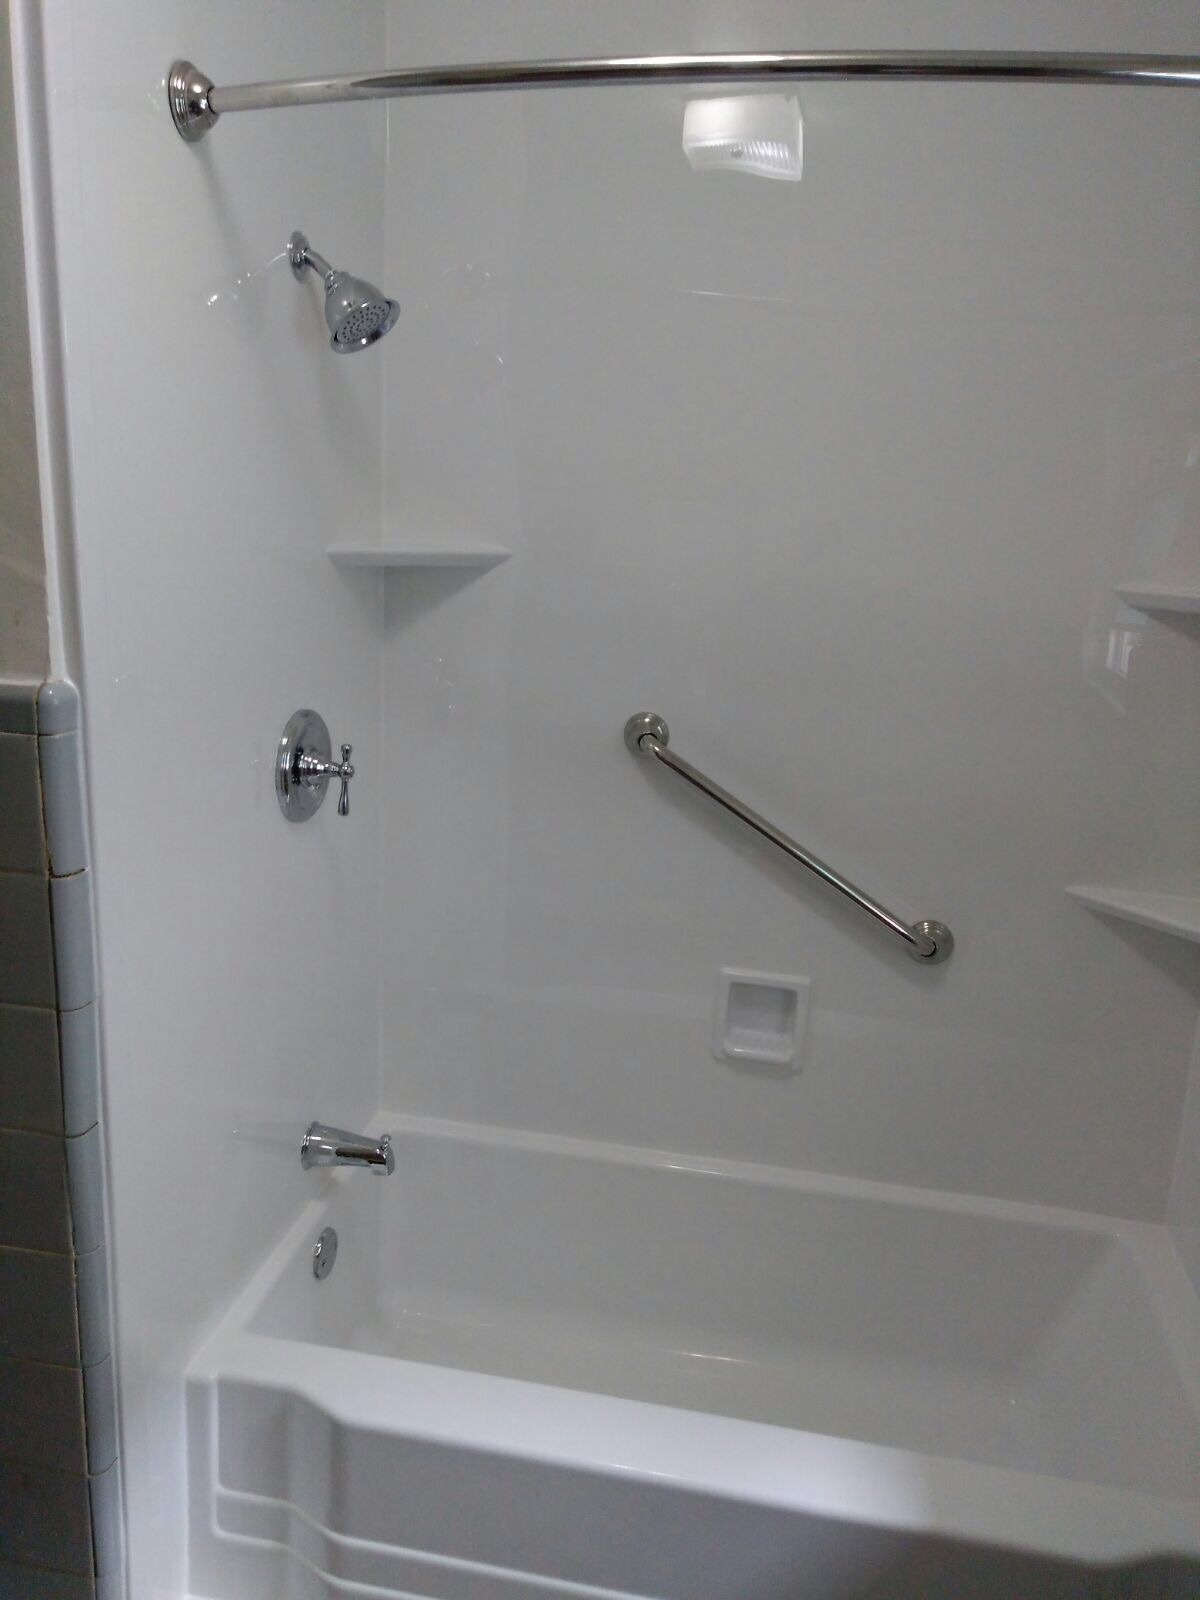 Bathtub liner jersey city new jersey new jersey for Bathtub liner problems